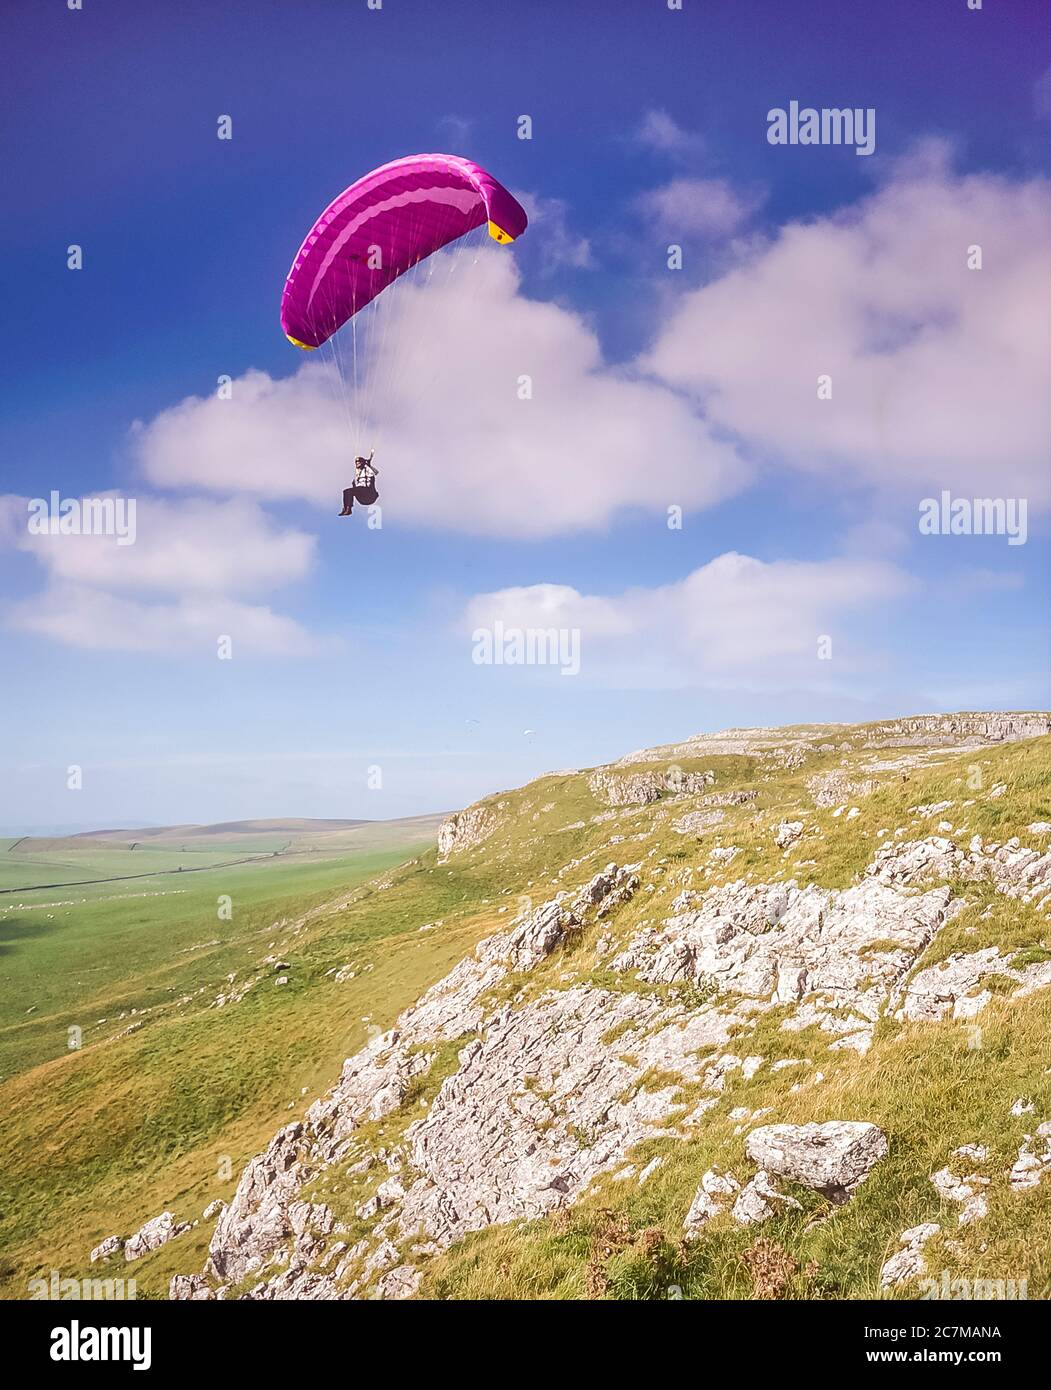 Para gliders ride the thermal air currents rising up over Hunts Cross Scar at Kingsdale not far from the Yorkshire Dales village of Ingleton around 2000 Stock Photo